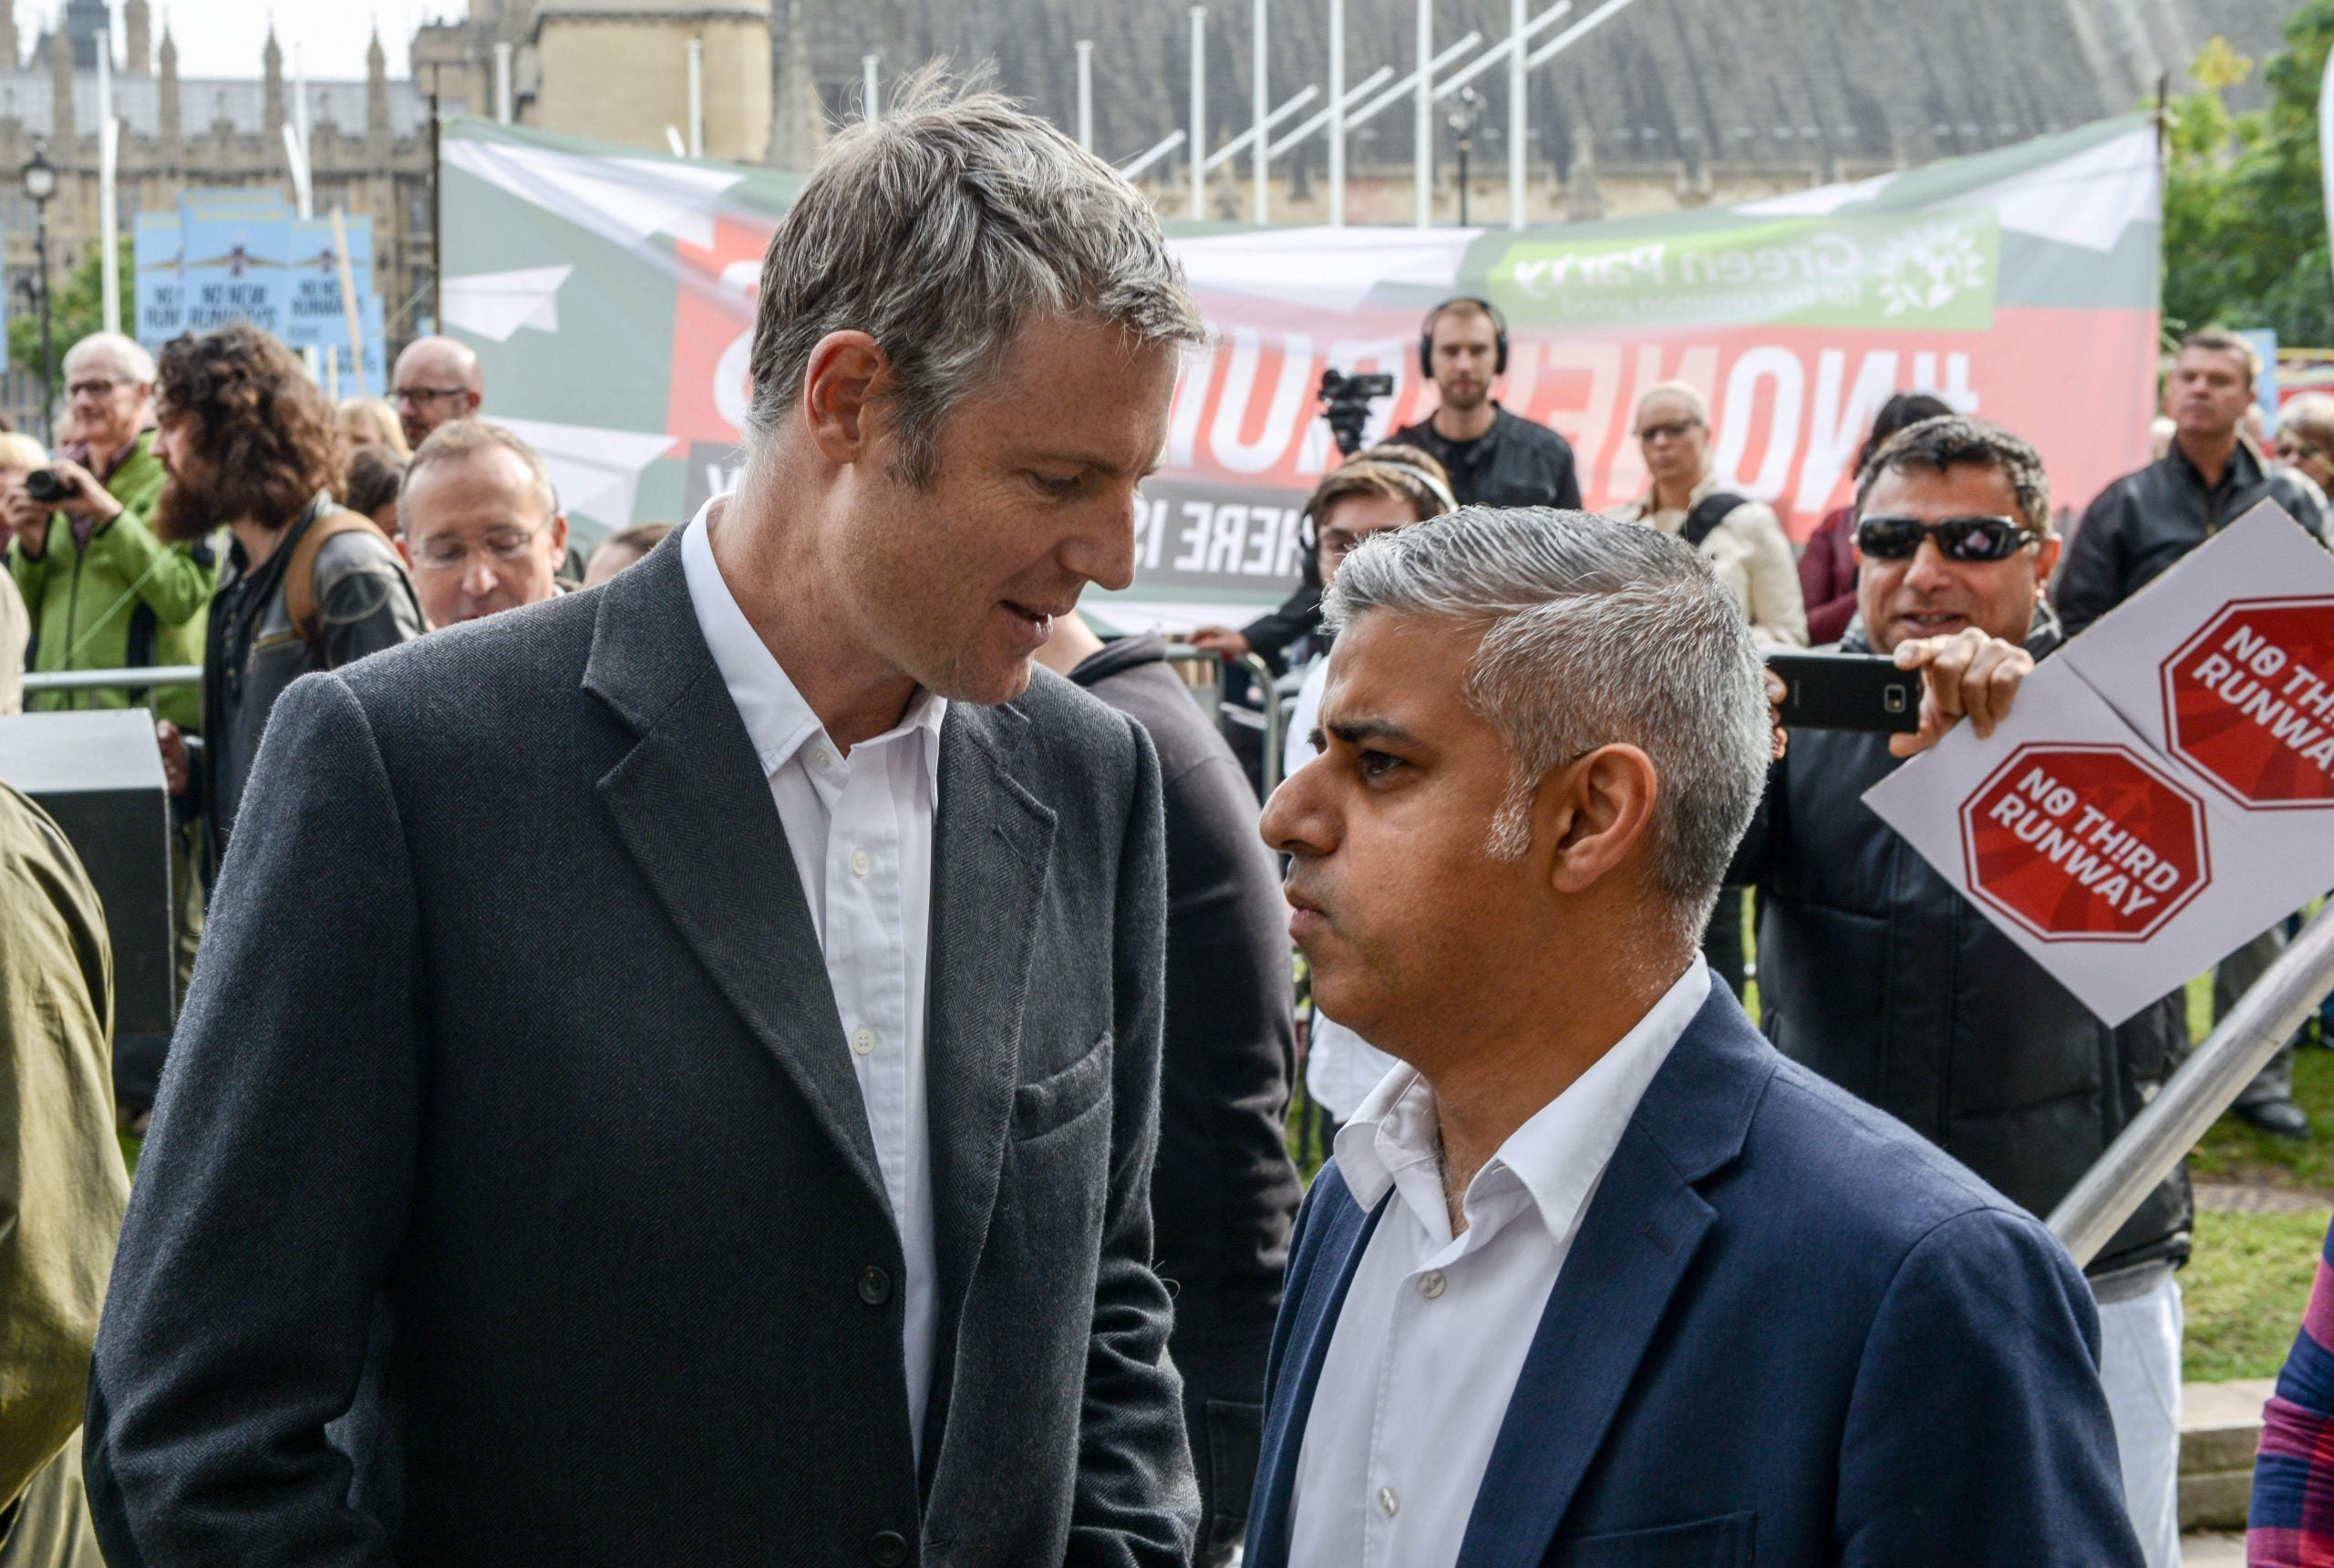 Like never before, the London mayoral election is going to be about housing